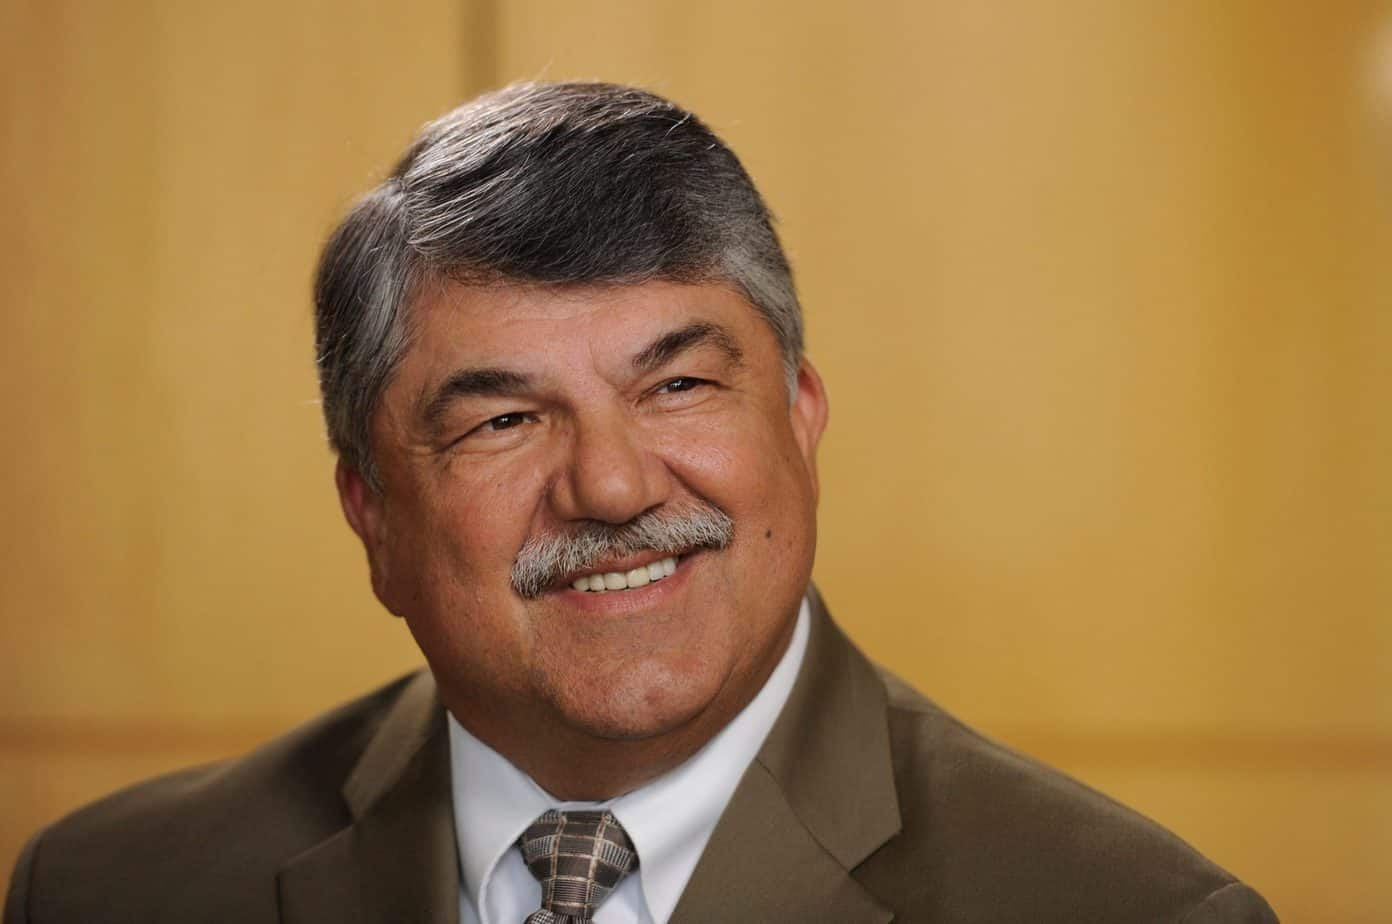 Richard Trumka Net Worth At The Time Of His Death